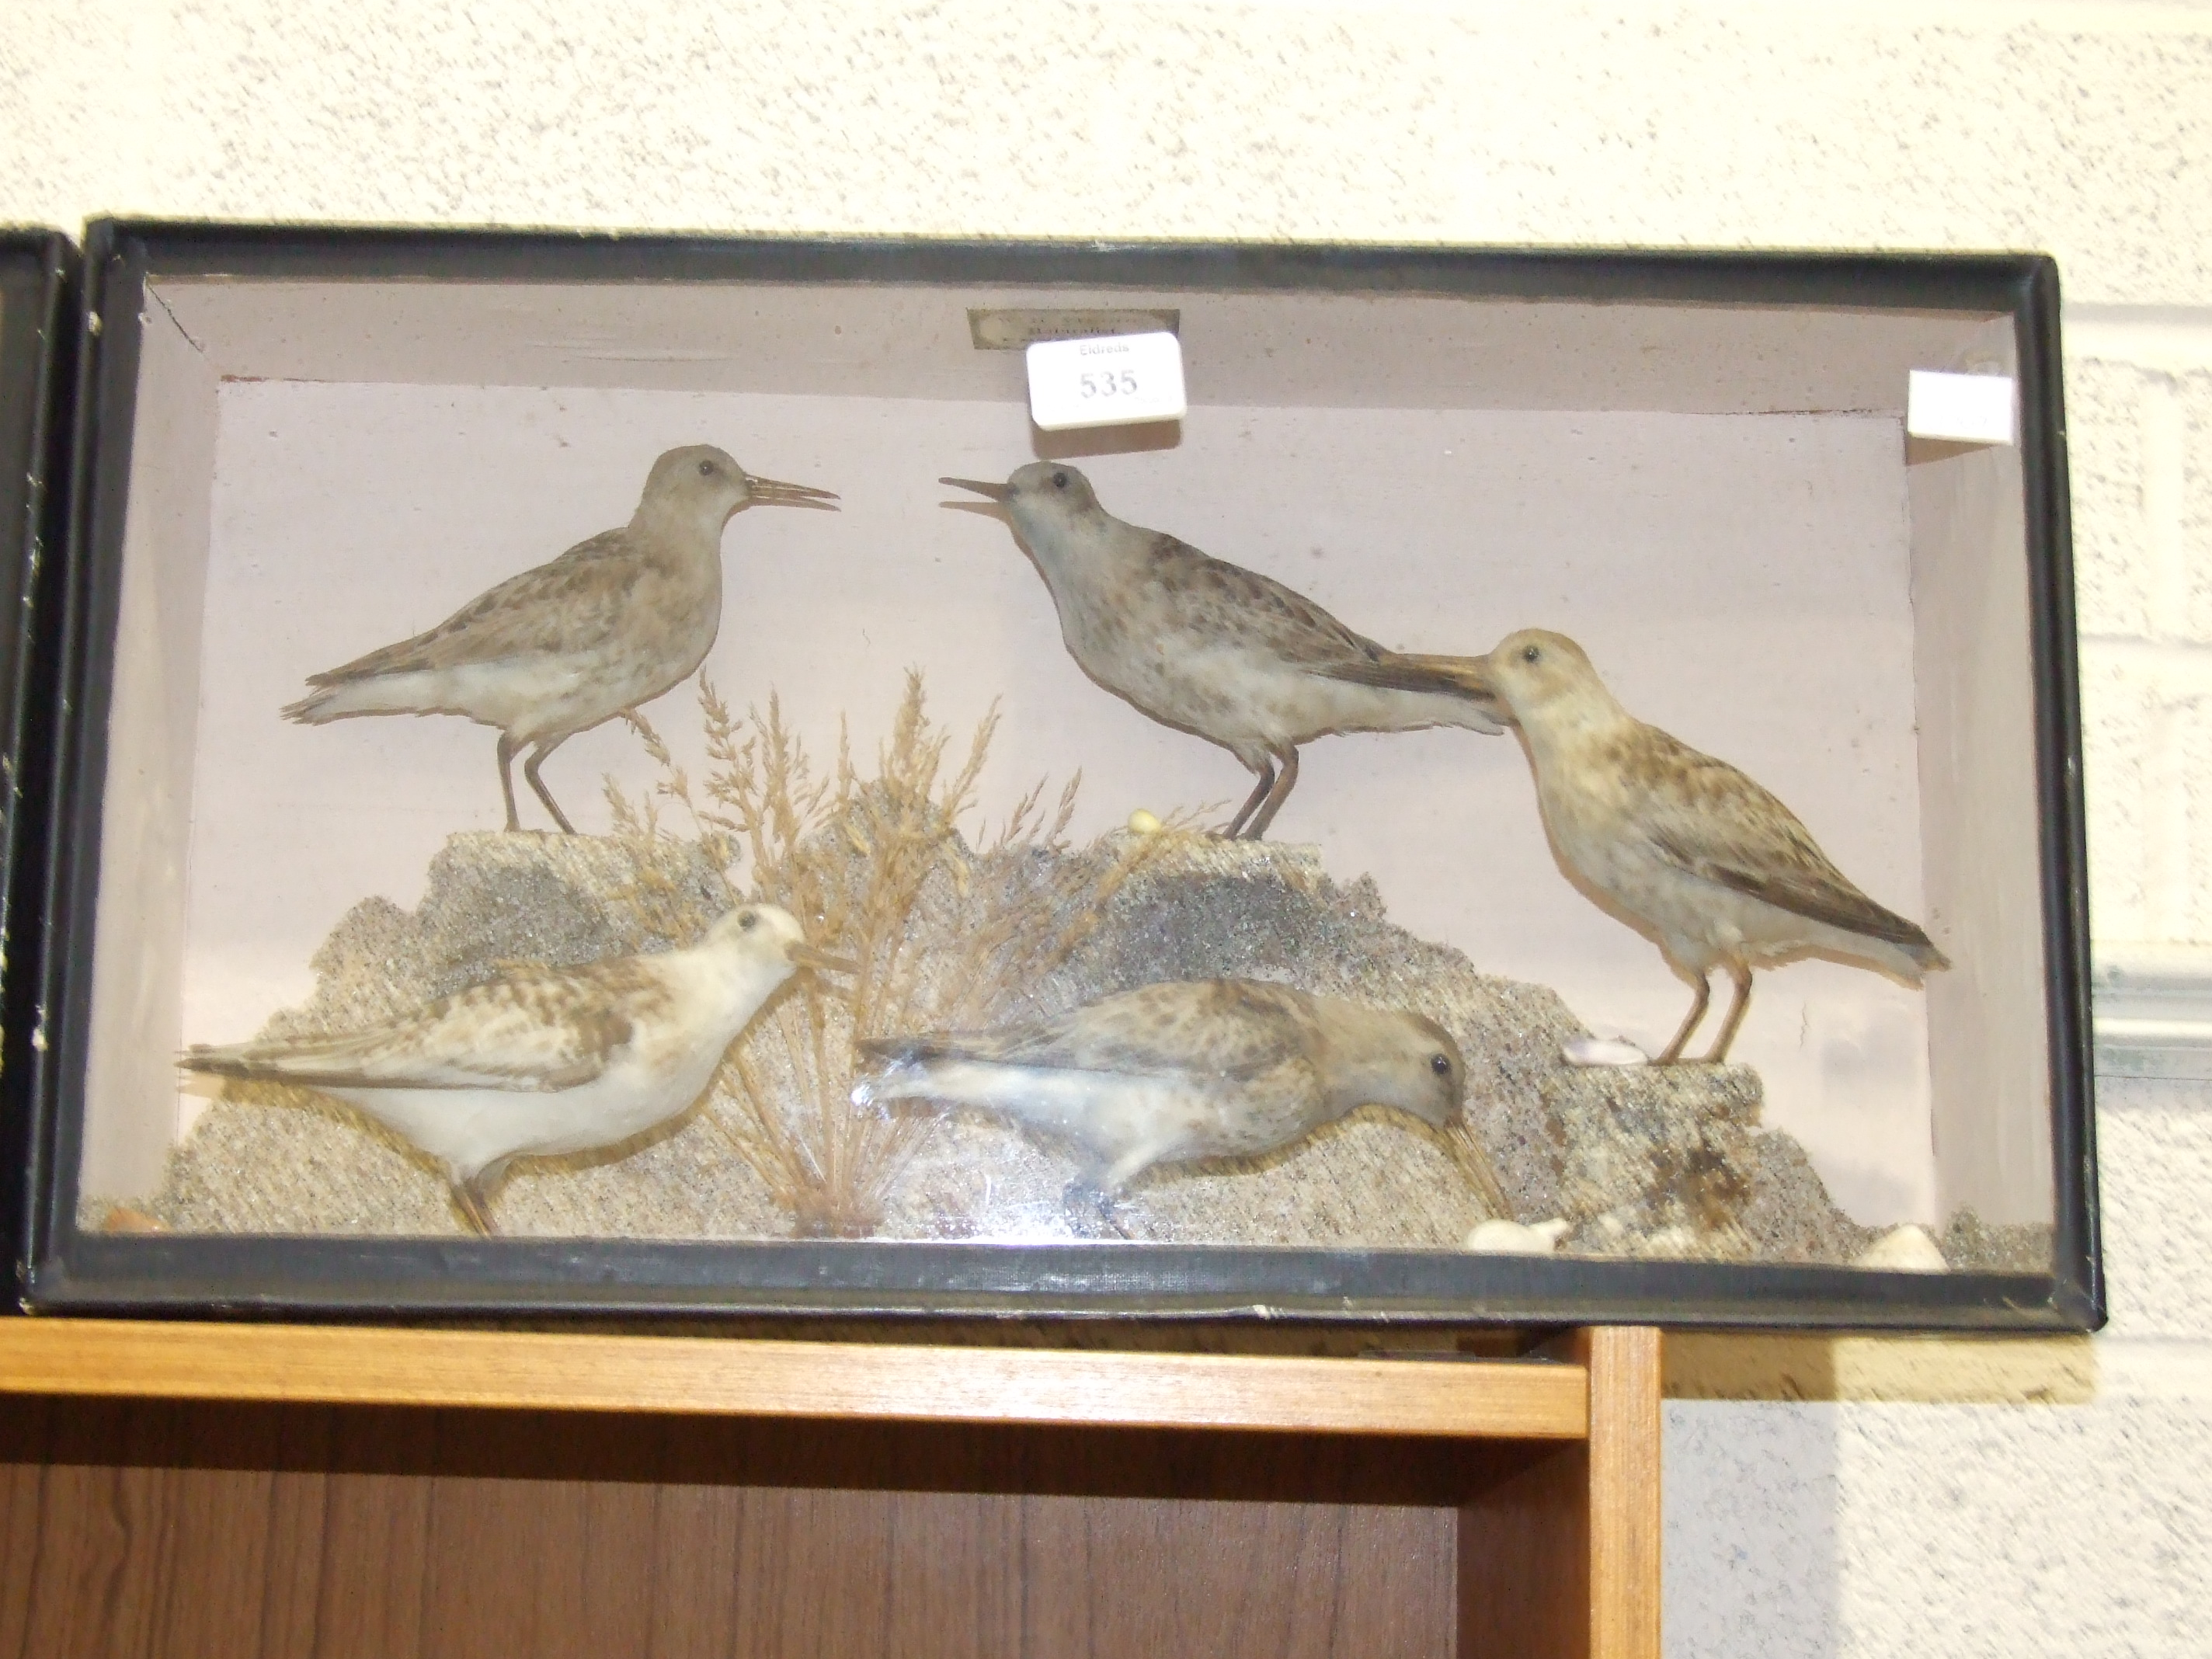 Lot 535 - Two glazed cases containing taxidermied shoreline waders, labelled 'WH Vingoe', approximately 50 x